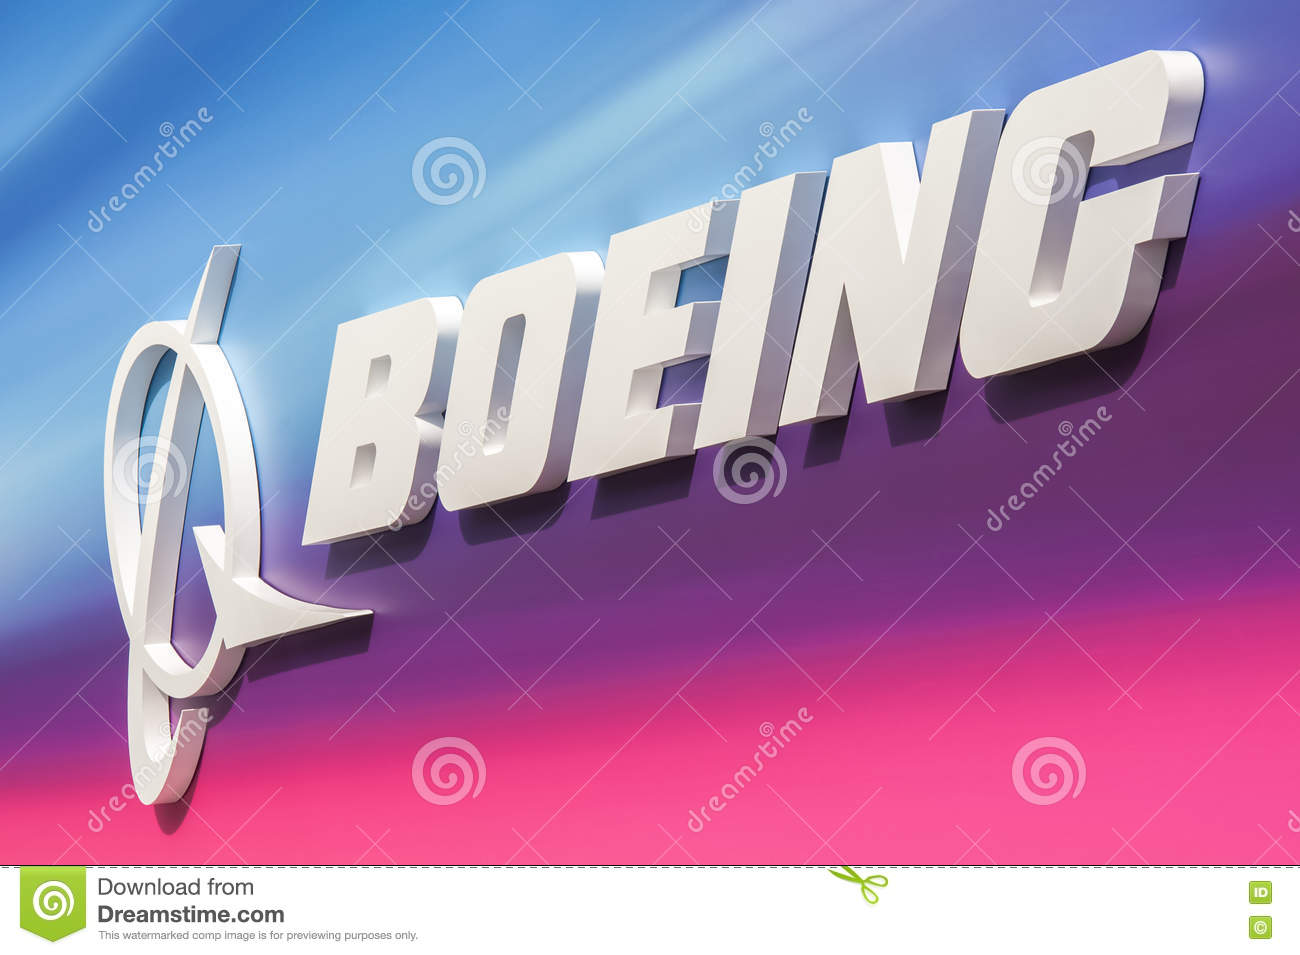 Boeing billboard editorial stock photo image of airshow 74638908 boeing billboard editorial stock photo buycottarizona Image collections